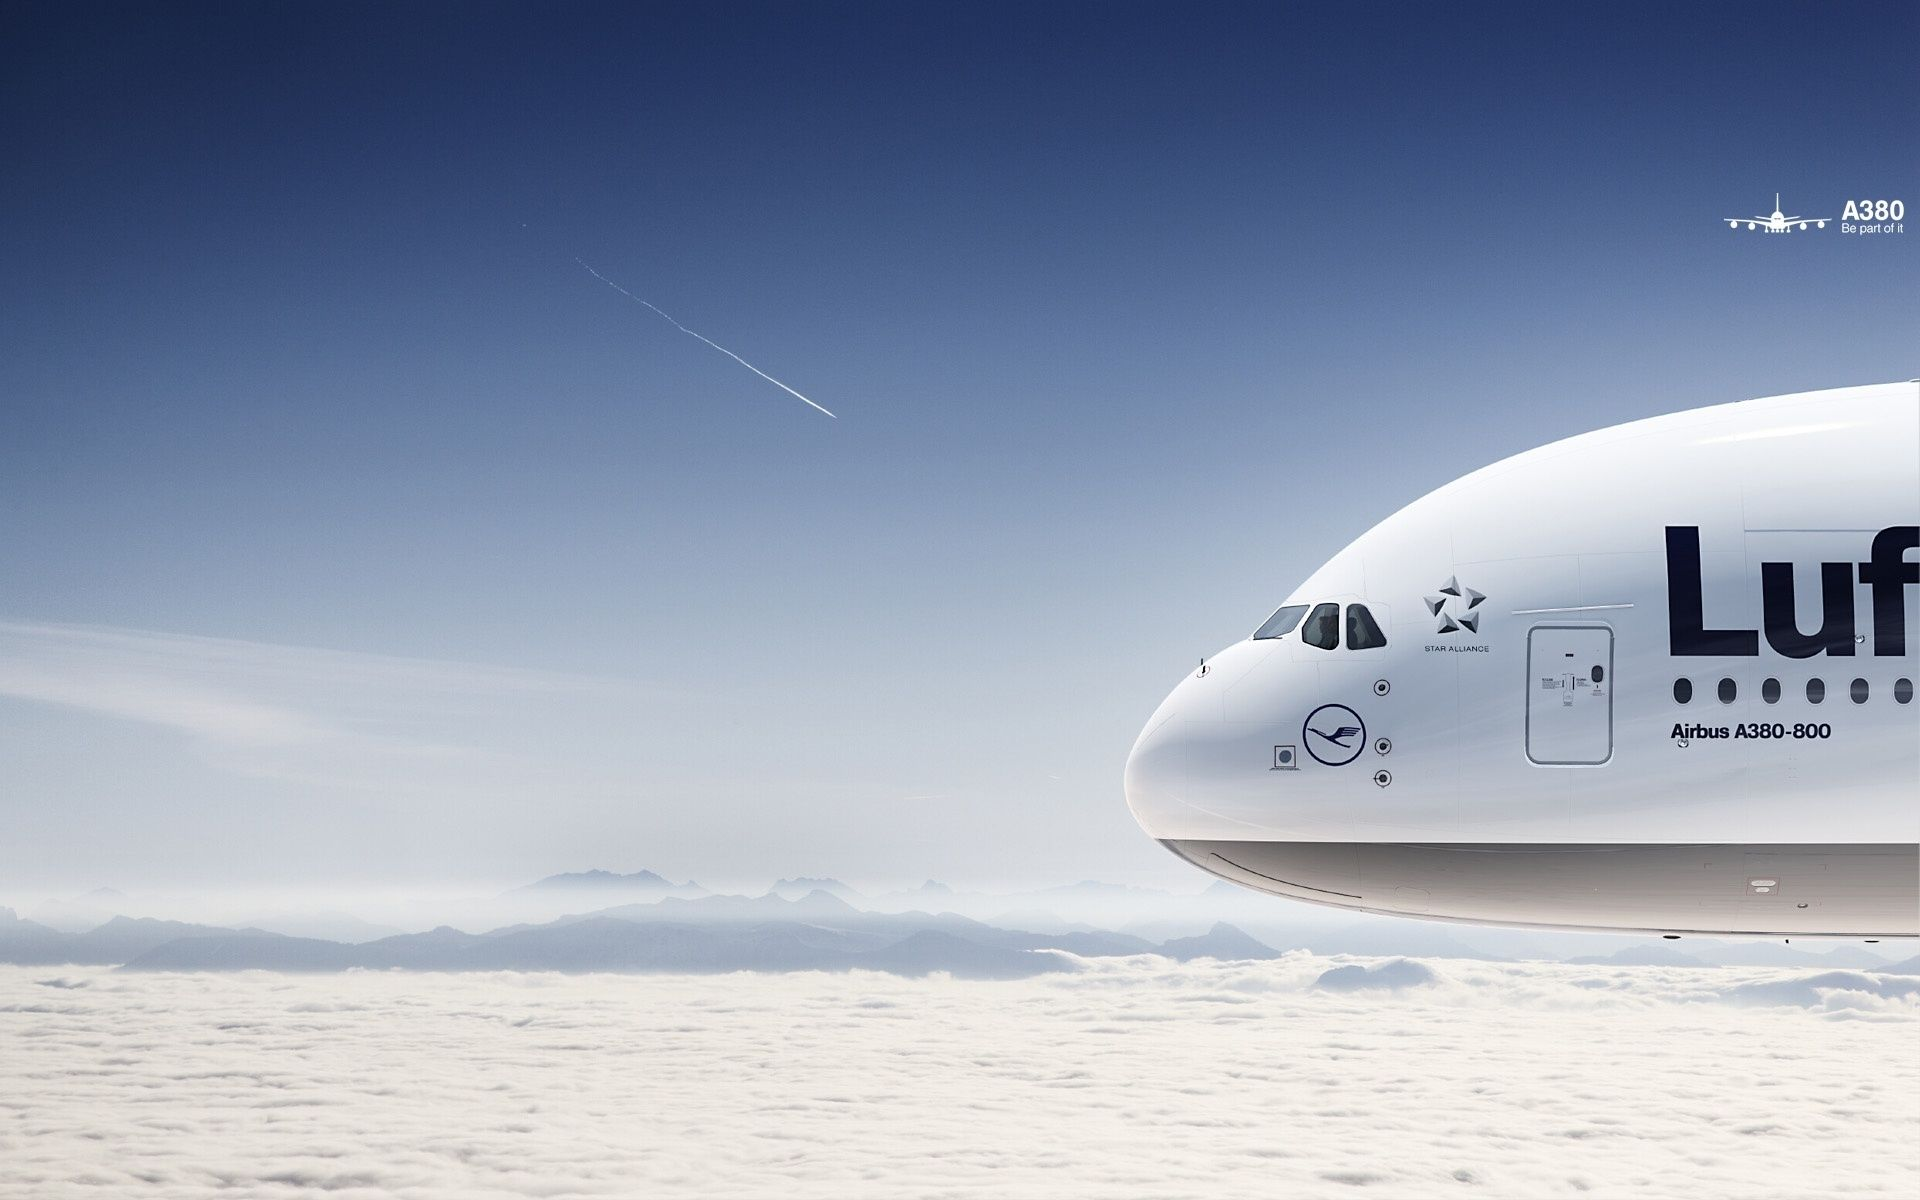 Pin By Aviation On Aviation Airbus A380 Airbus Aircraft